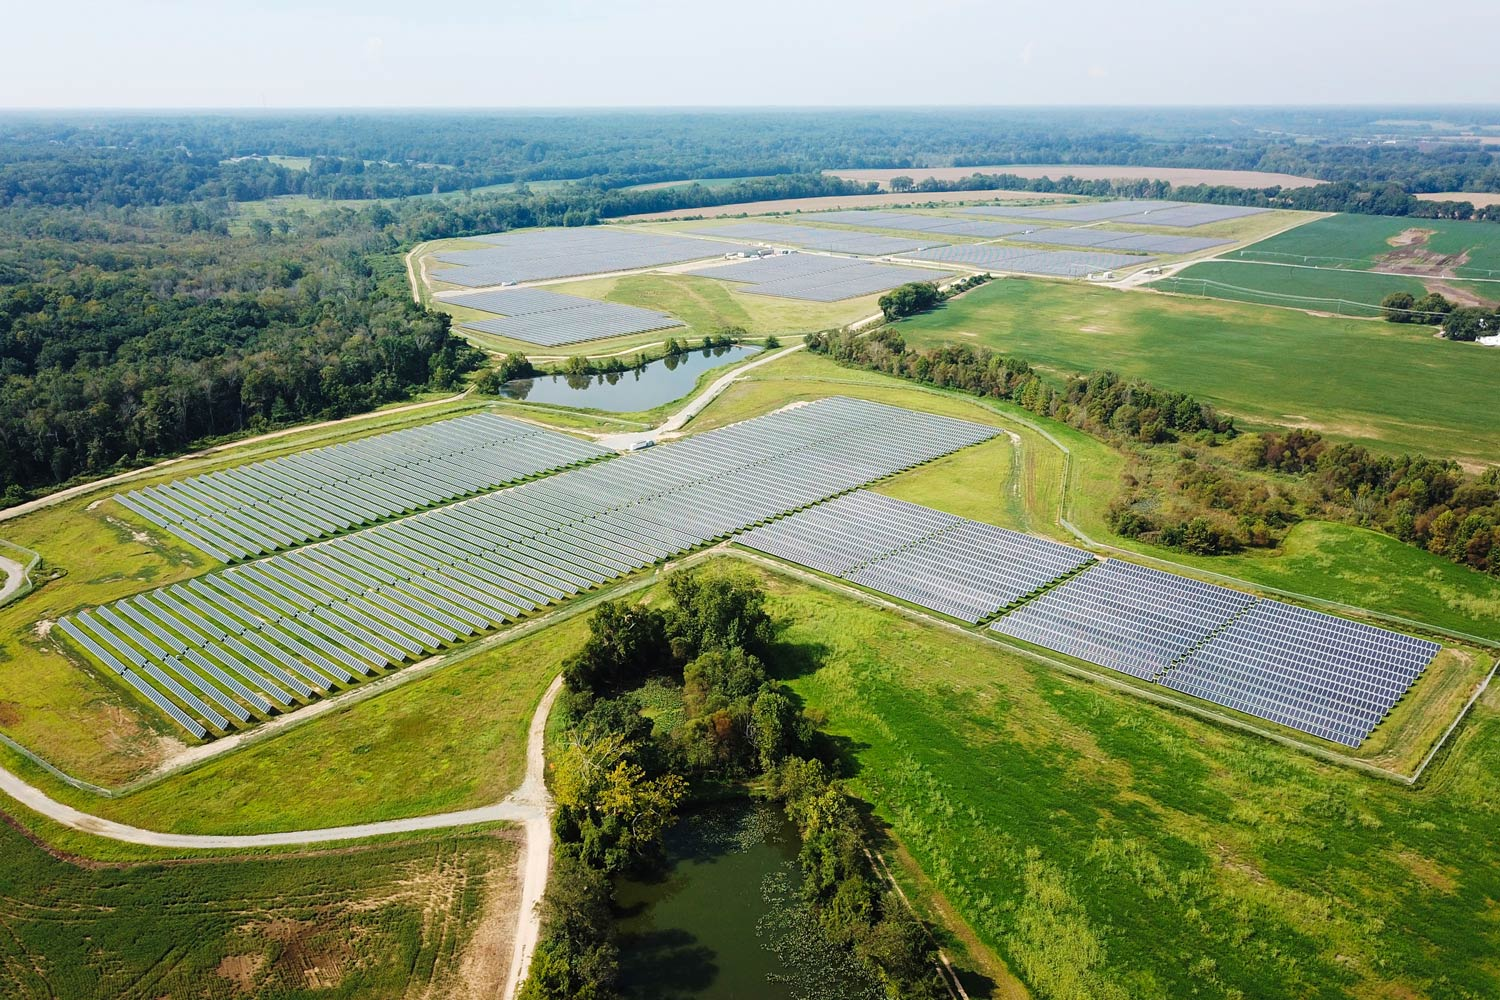 The 160-acre solar facility in King William County features approximately 65,000 solar panels, enough to power about 4,250 homes at peak output.